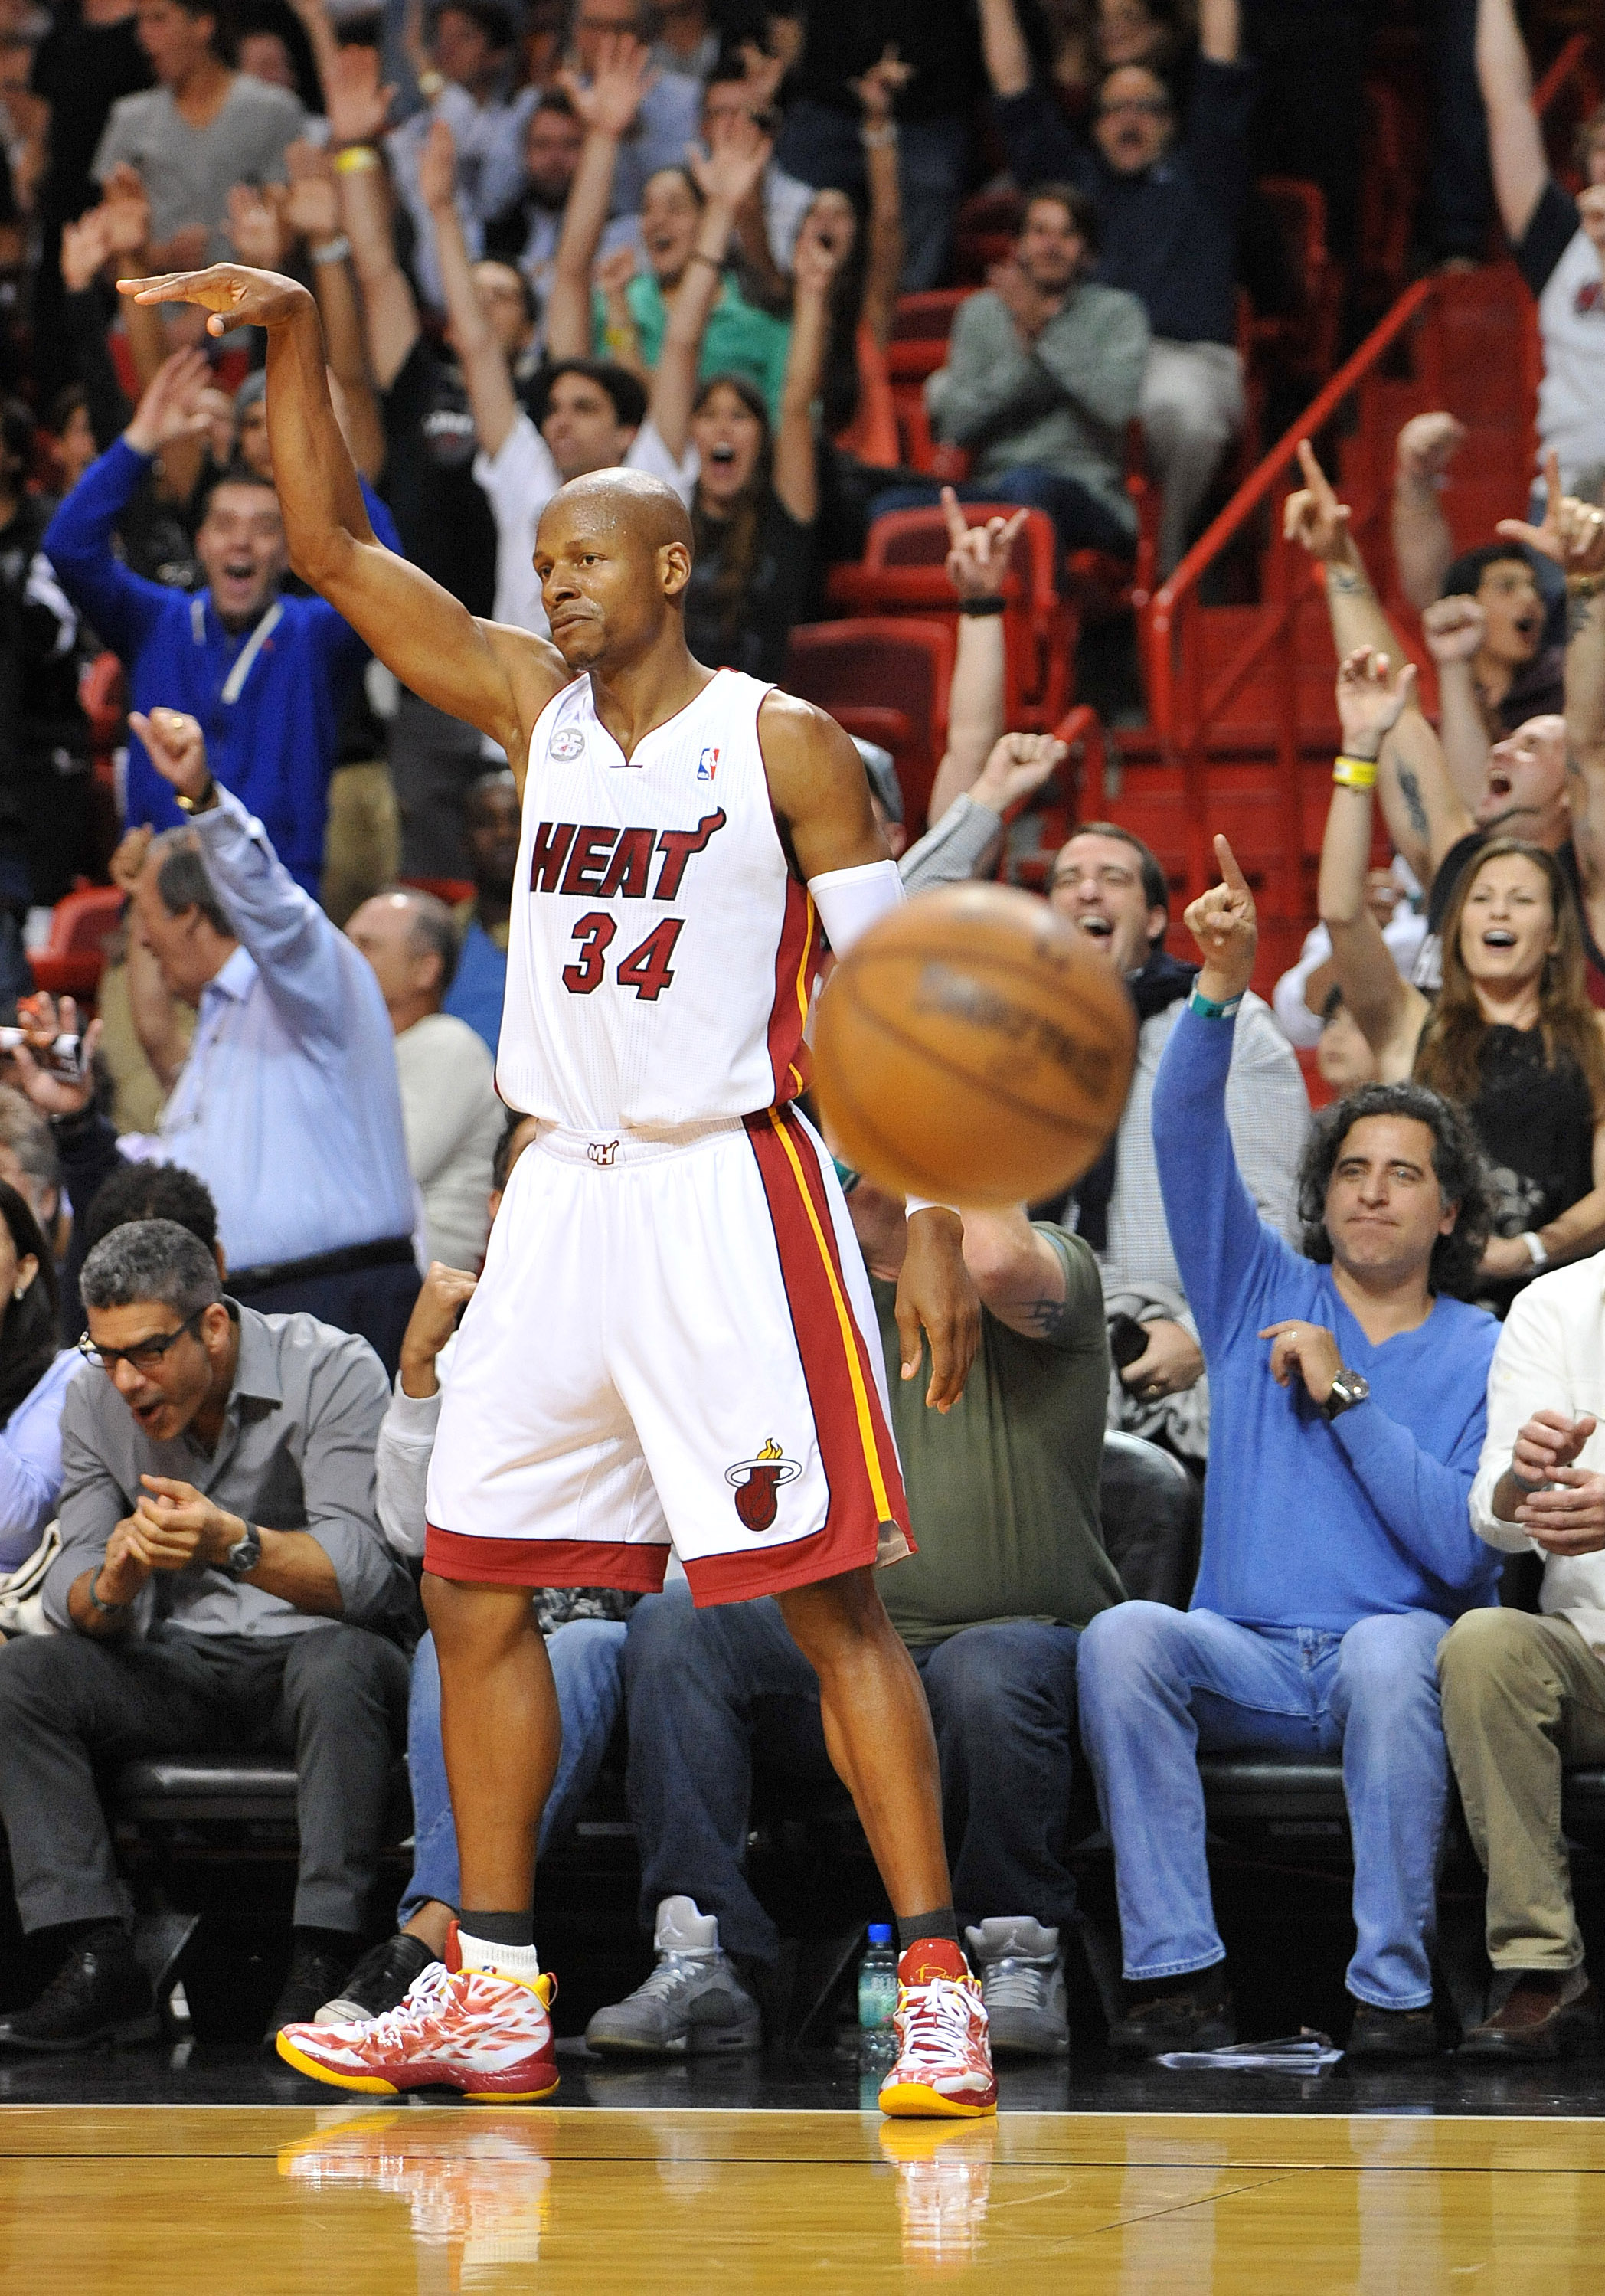 Ray Allen has embraced his role off the bench with the Heat. (USA Today Sports)